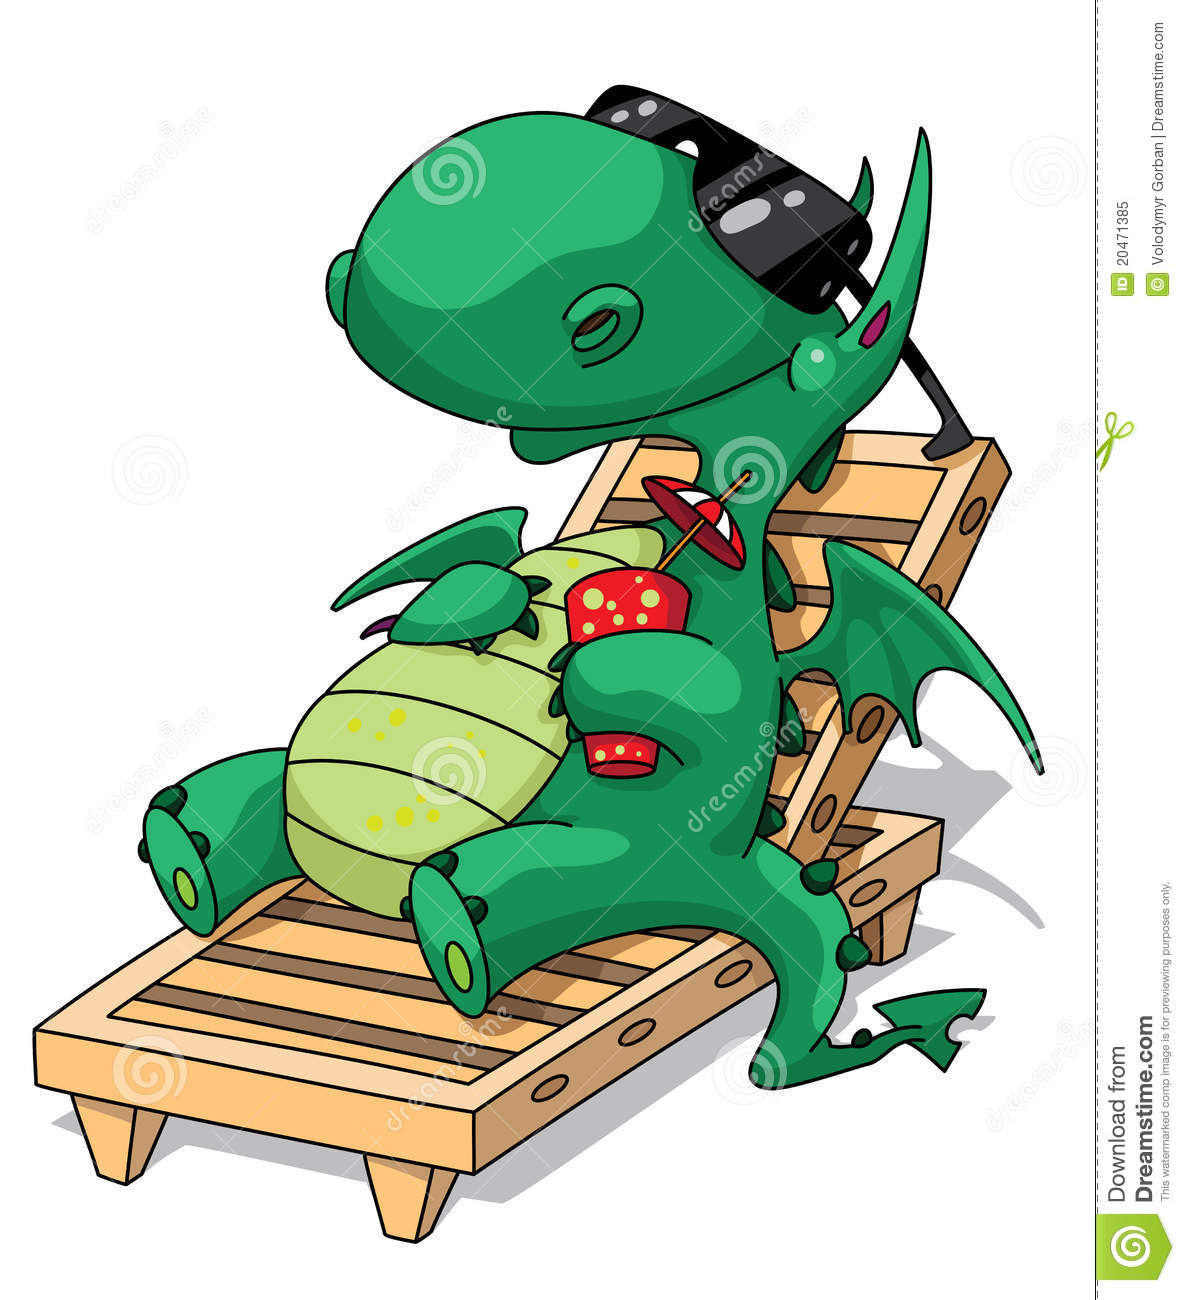 Funny Relaxation Dragon Royalty Free Stock Photo   Image  20471385